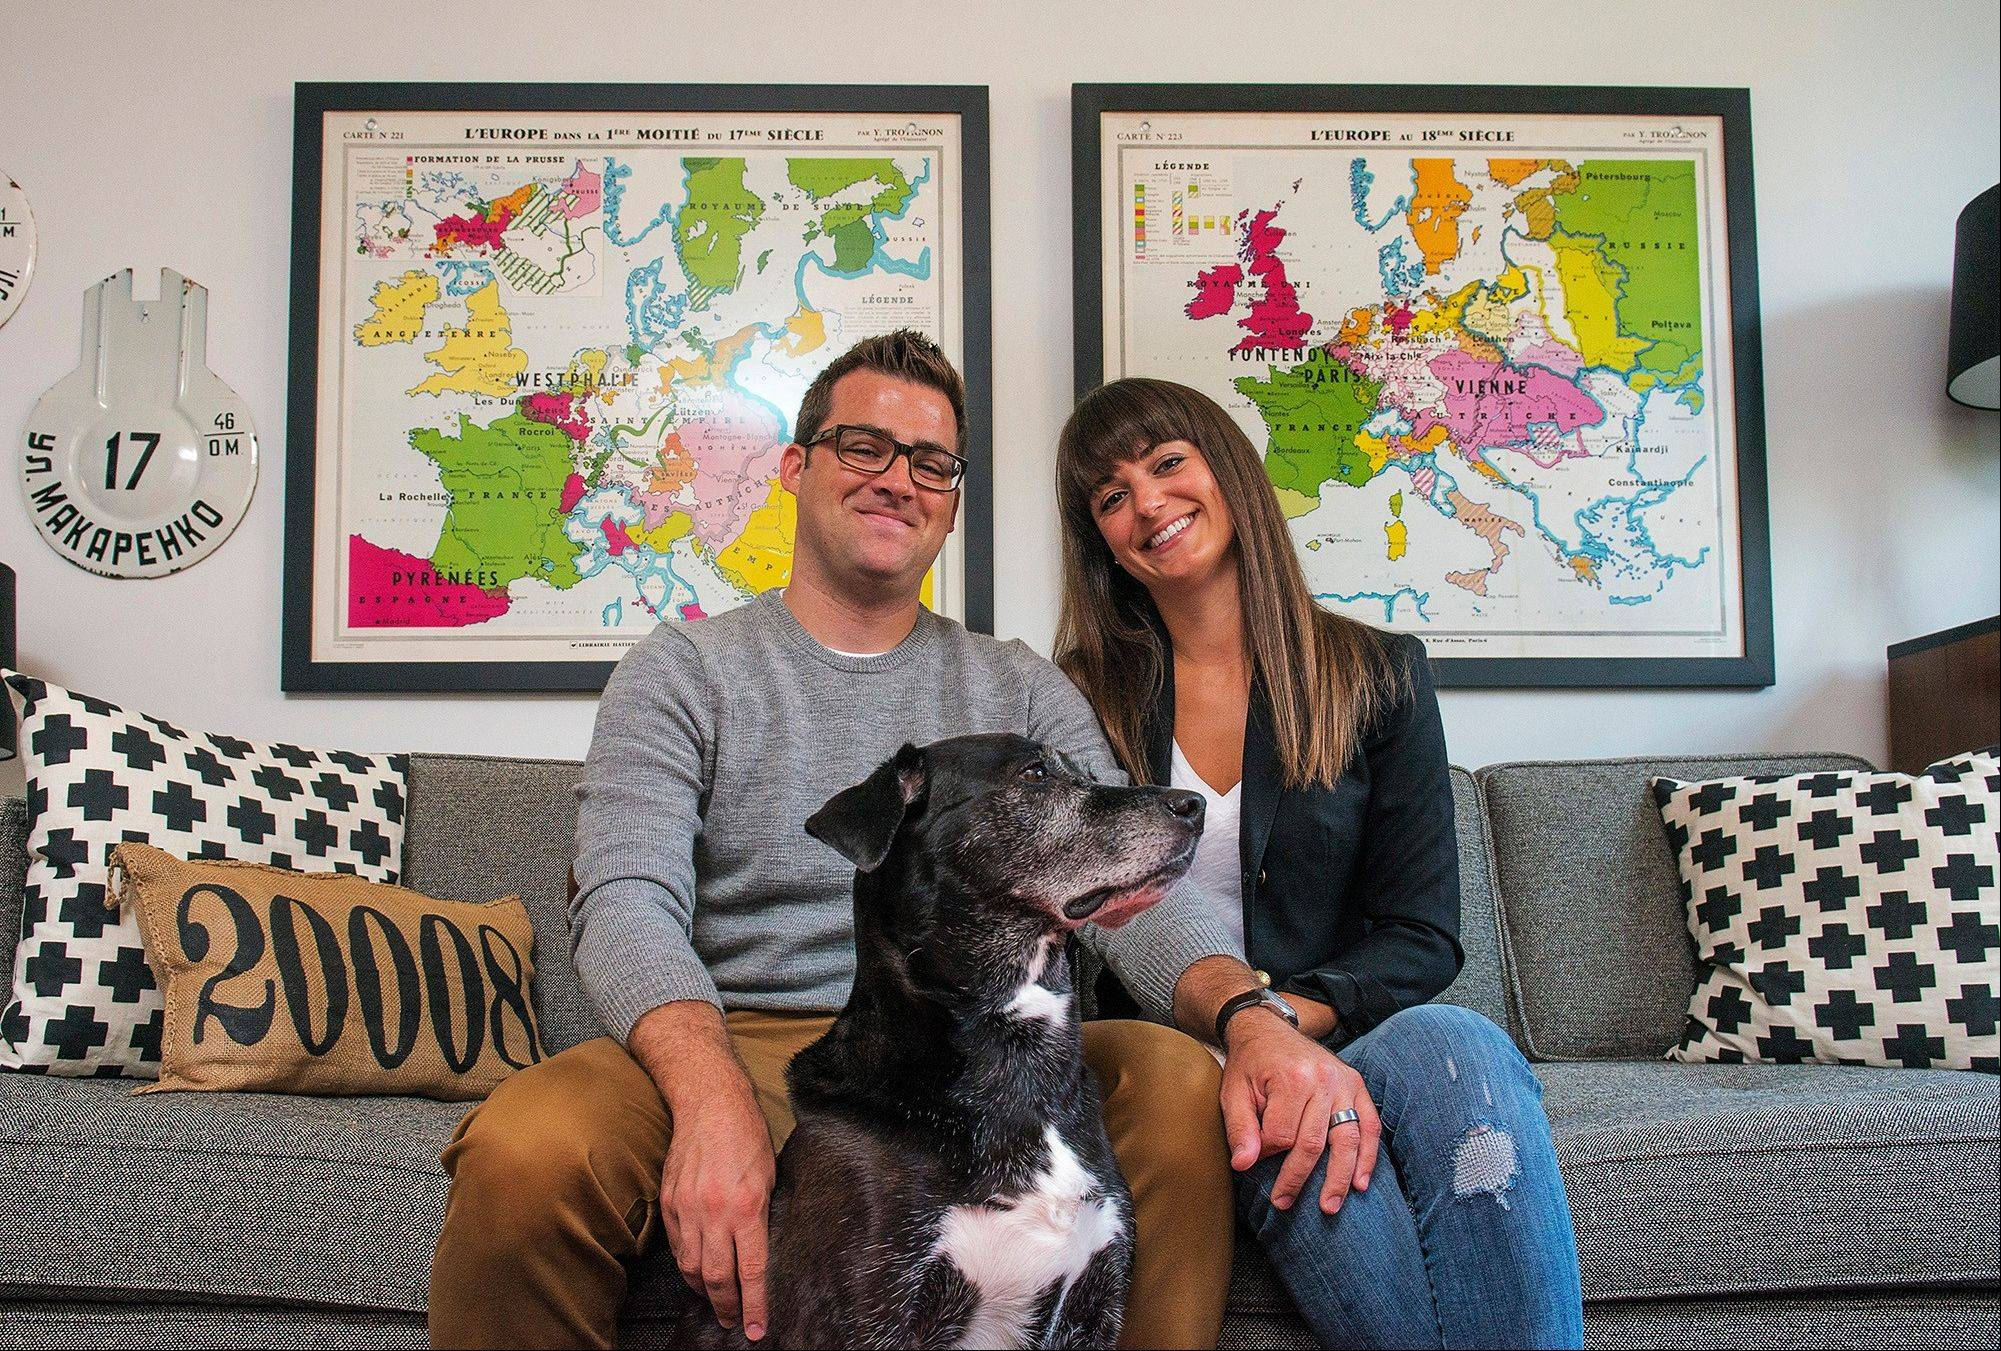 The Kushlans and their dog, Copeland, in their living room under the maps the couple picked up on a trip to France; the Kushlans believe that what you leave out of a room is just as important as what you put in it.